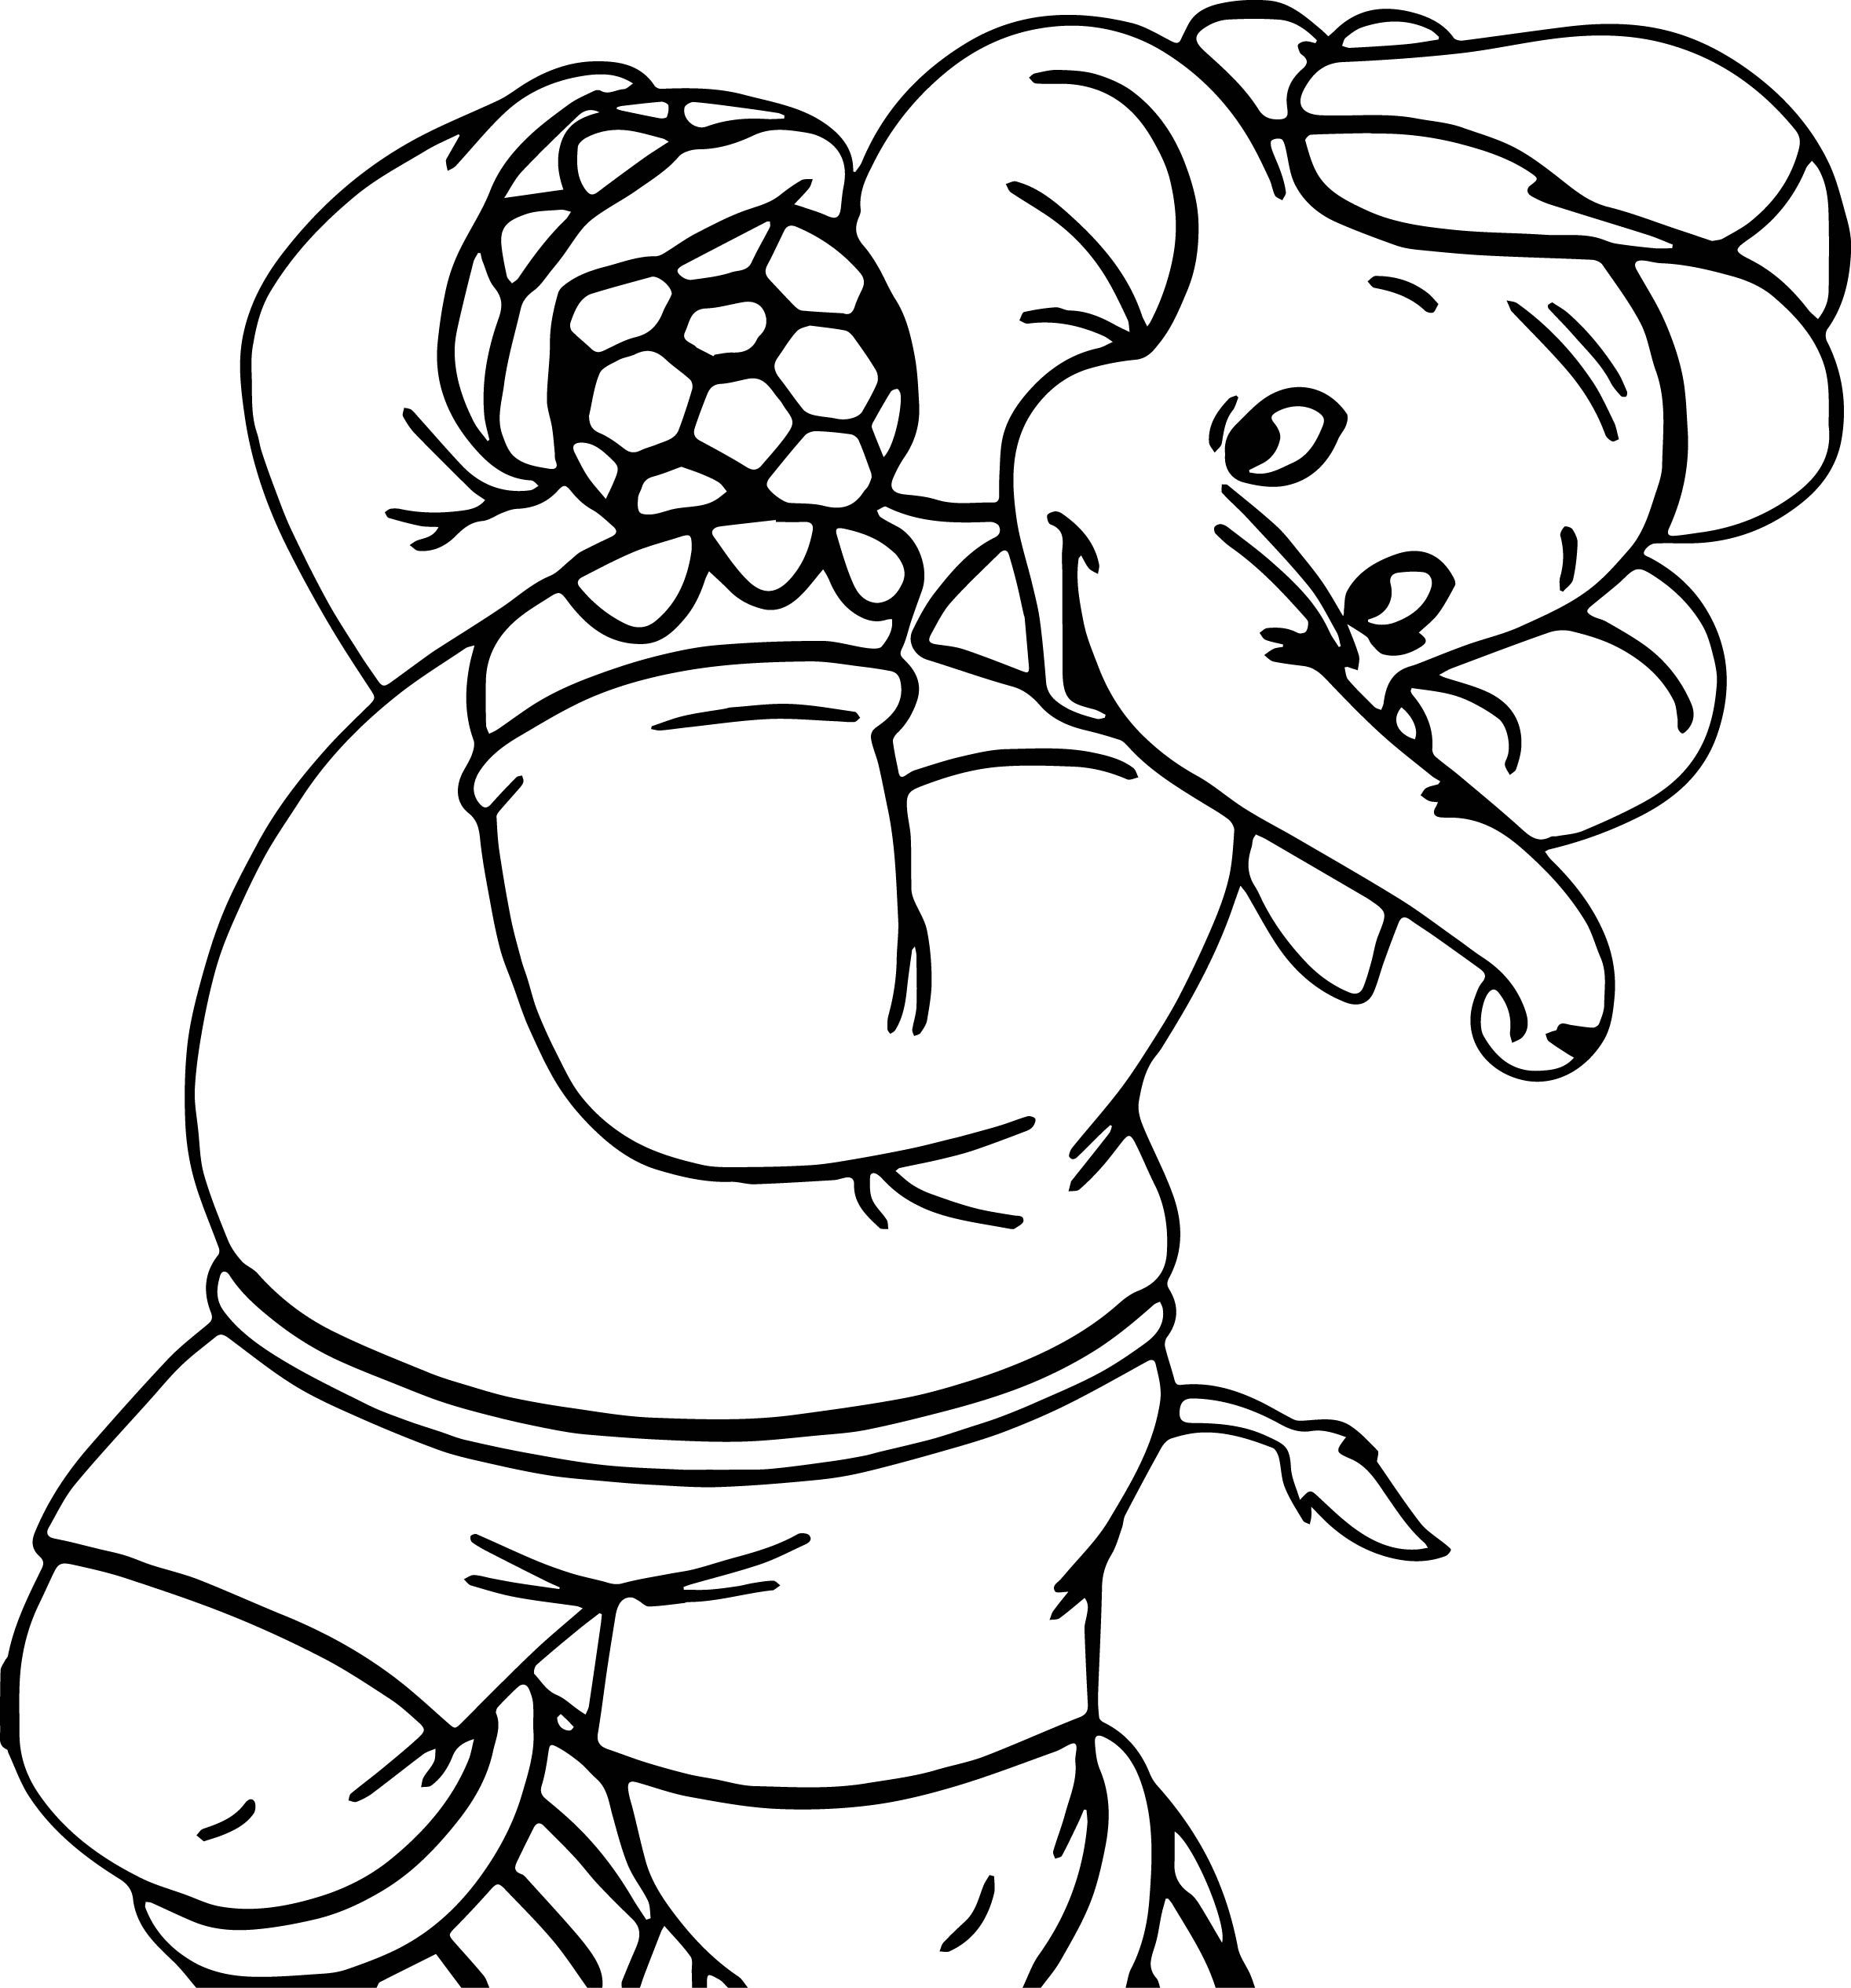 awesome Amazing Elephant Soccer Coloring Page (With images ...